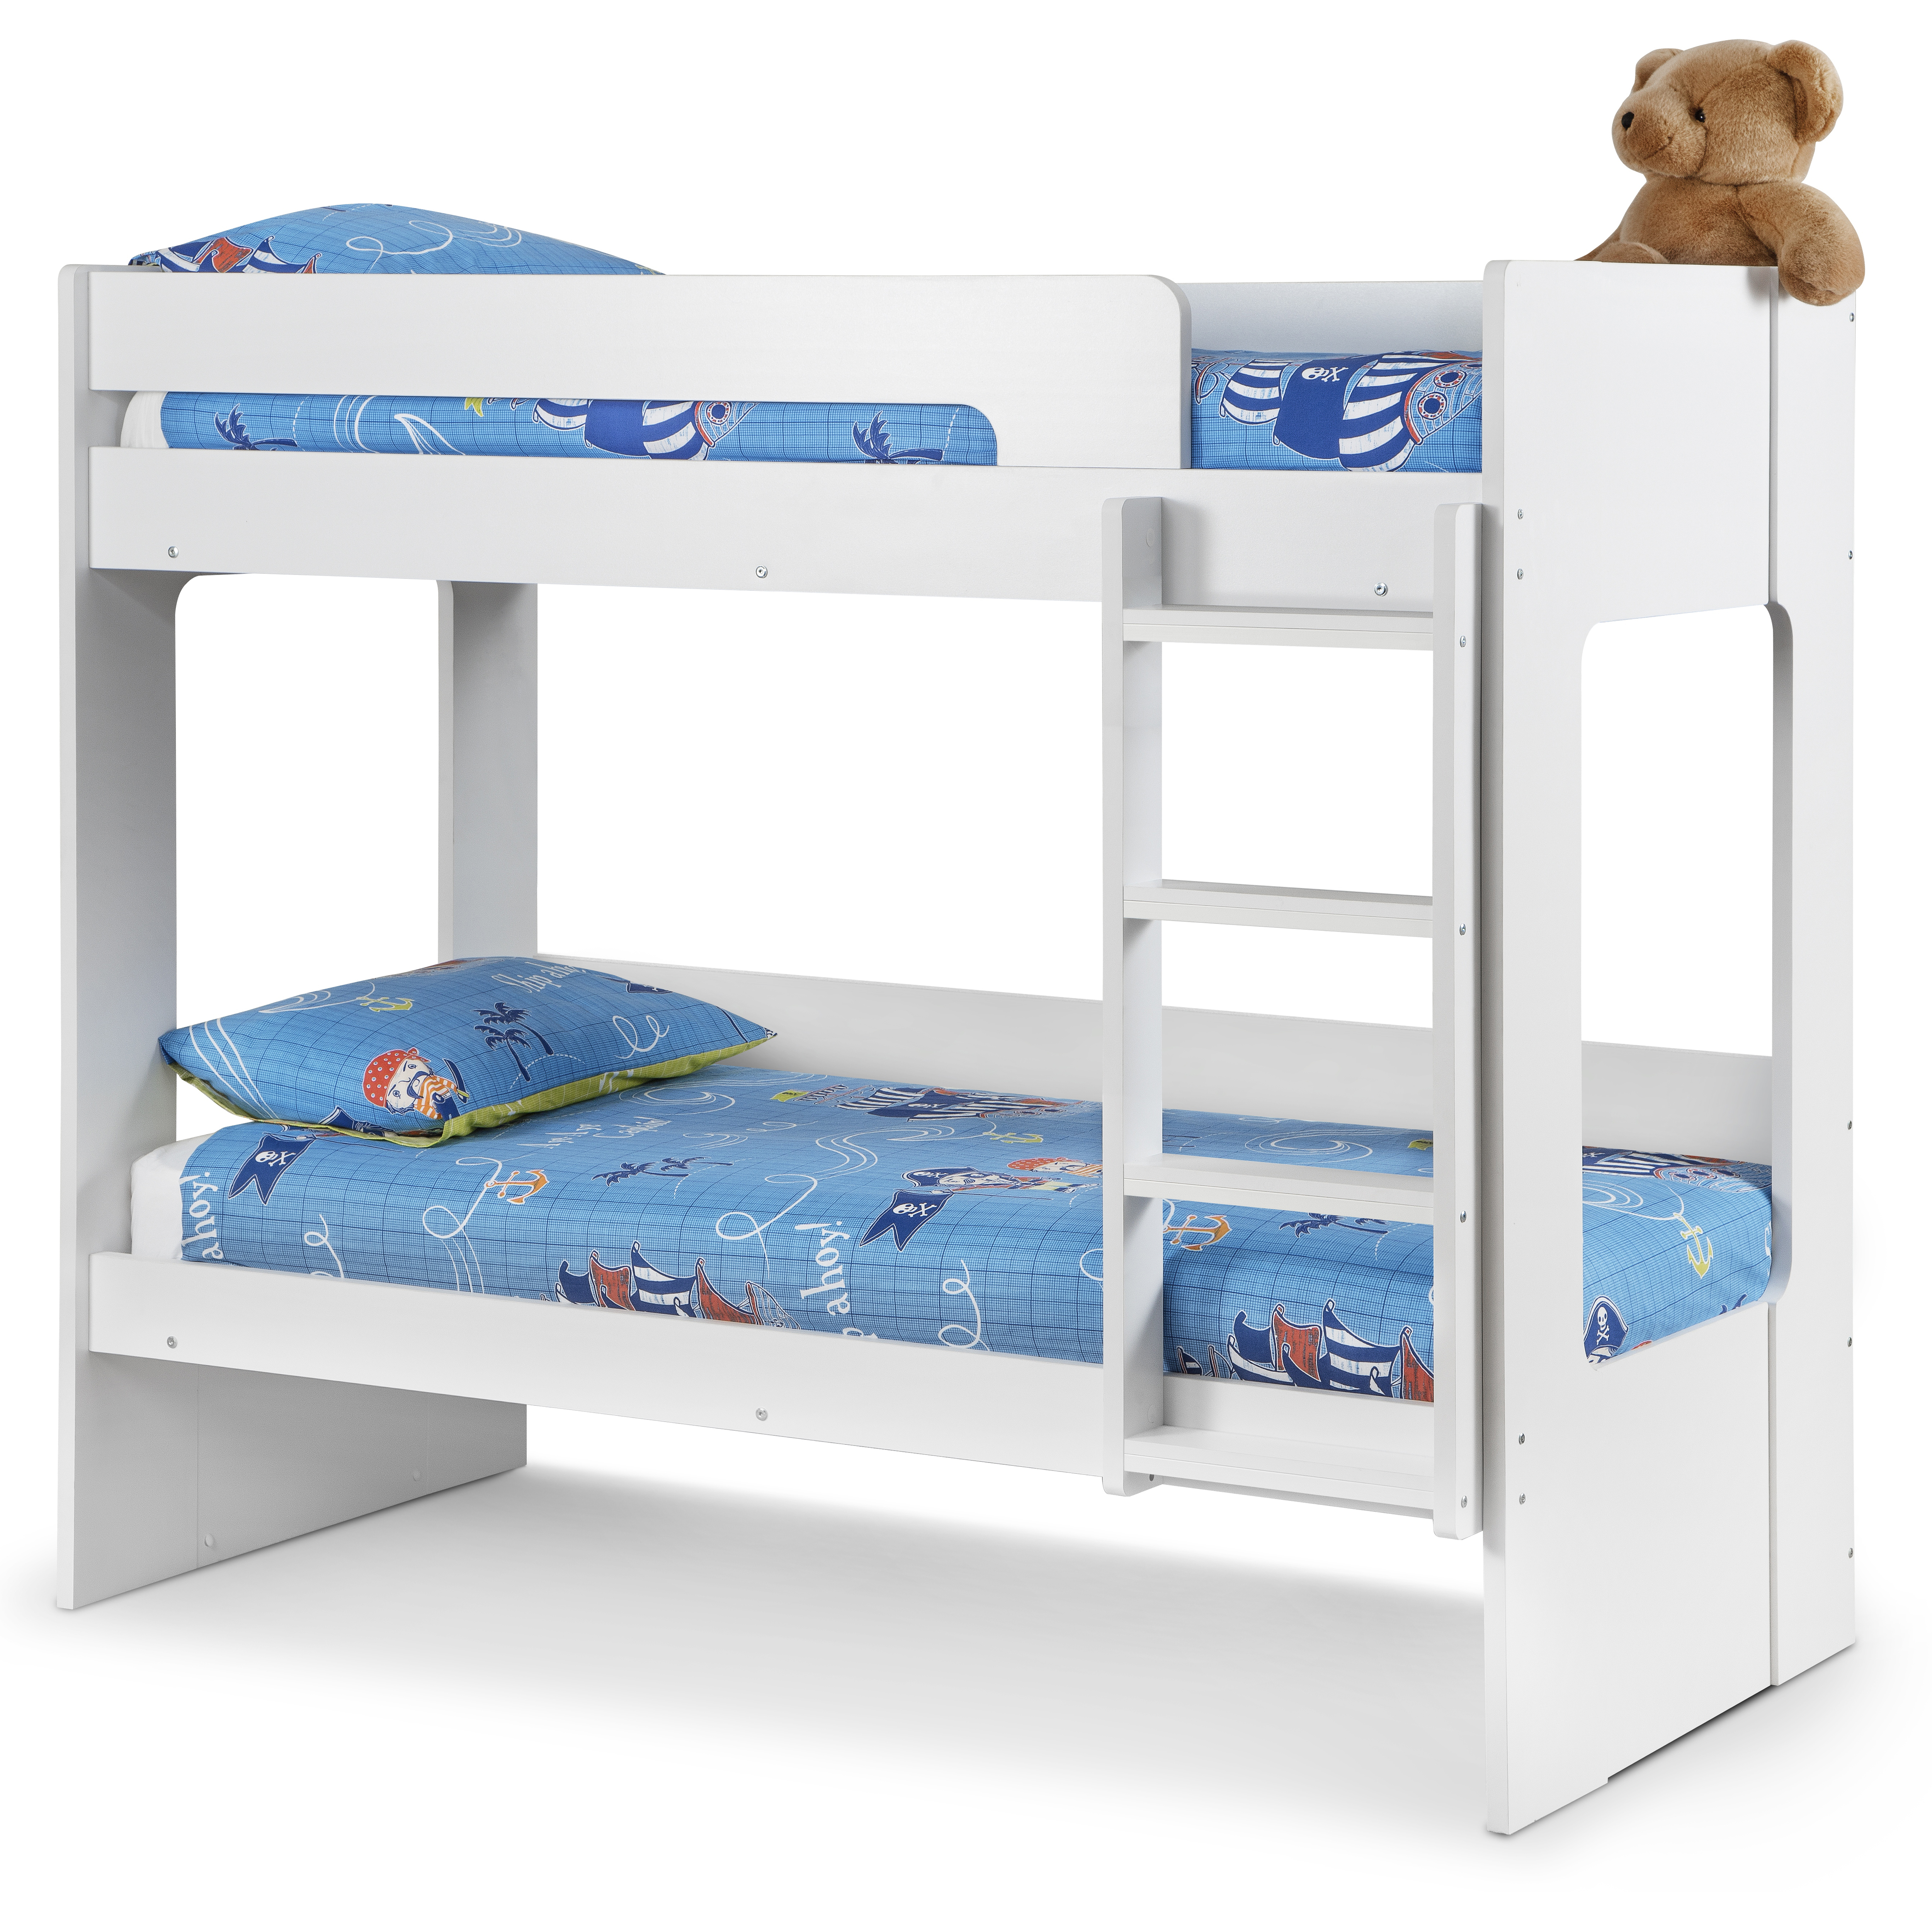 Bunk Bed For Sale London